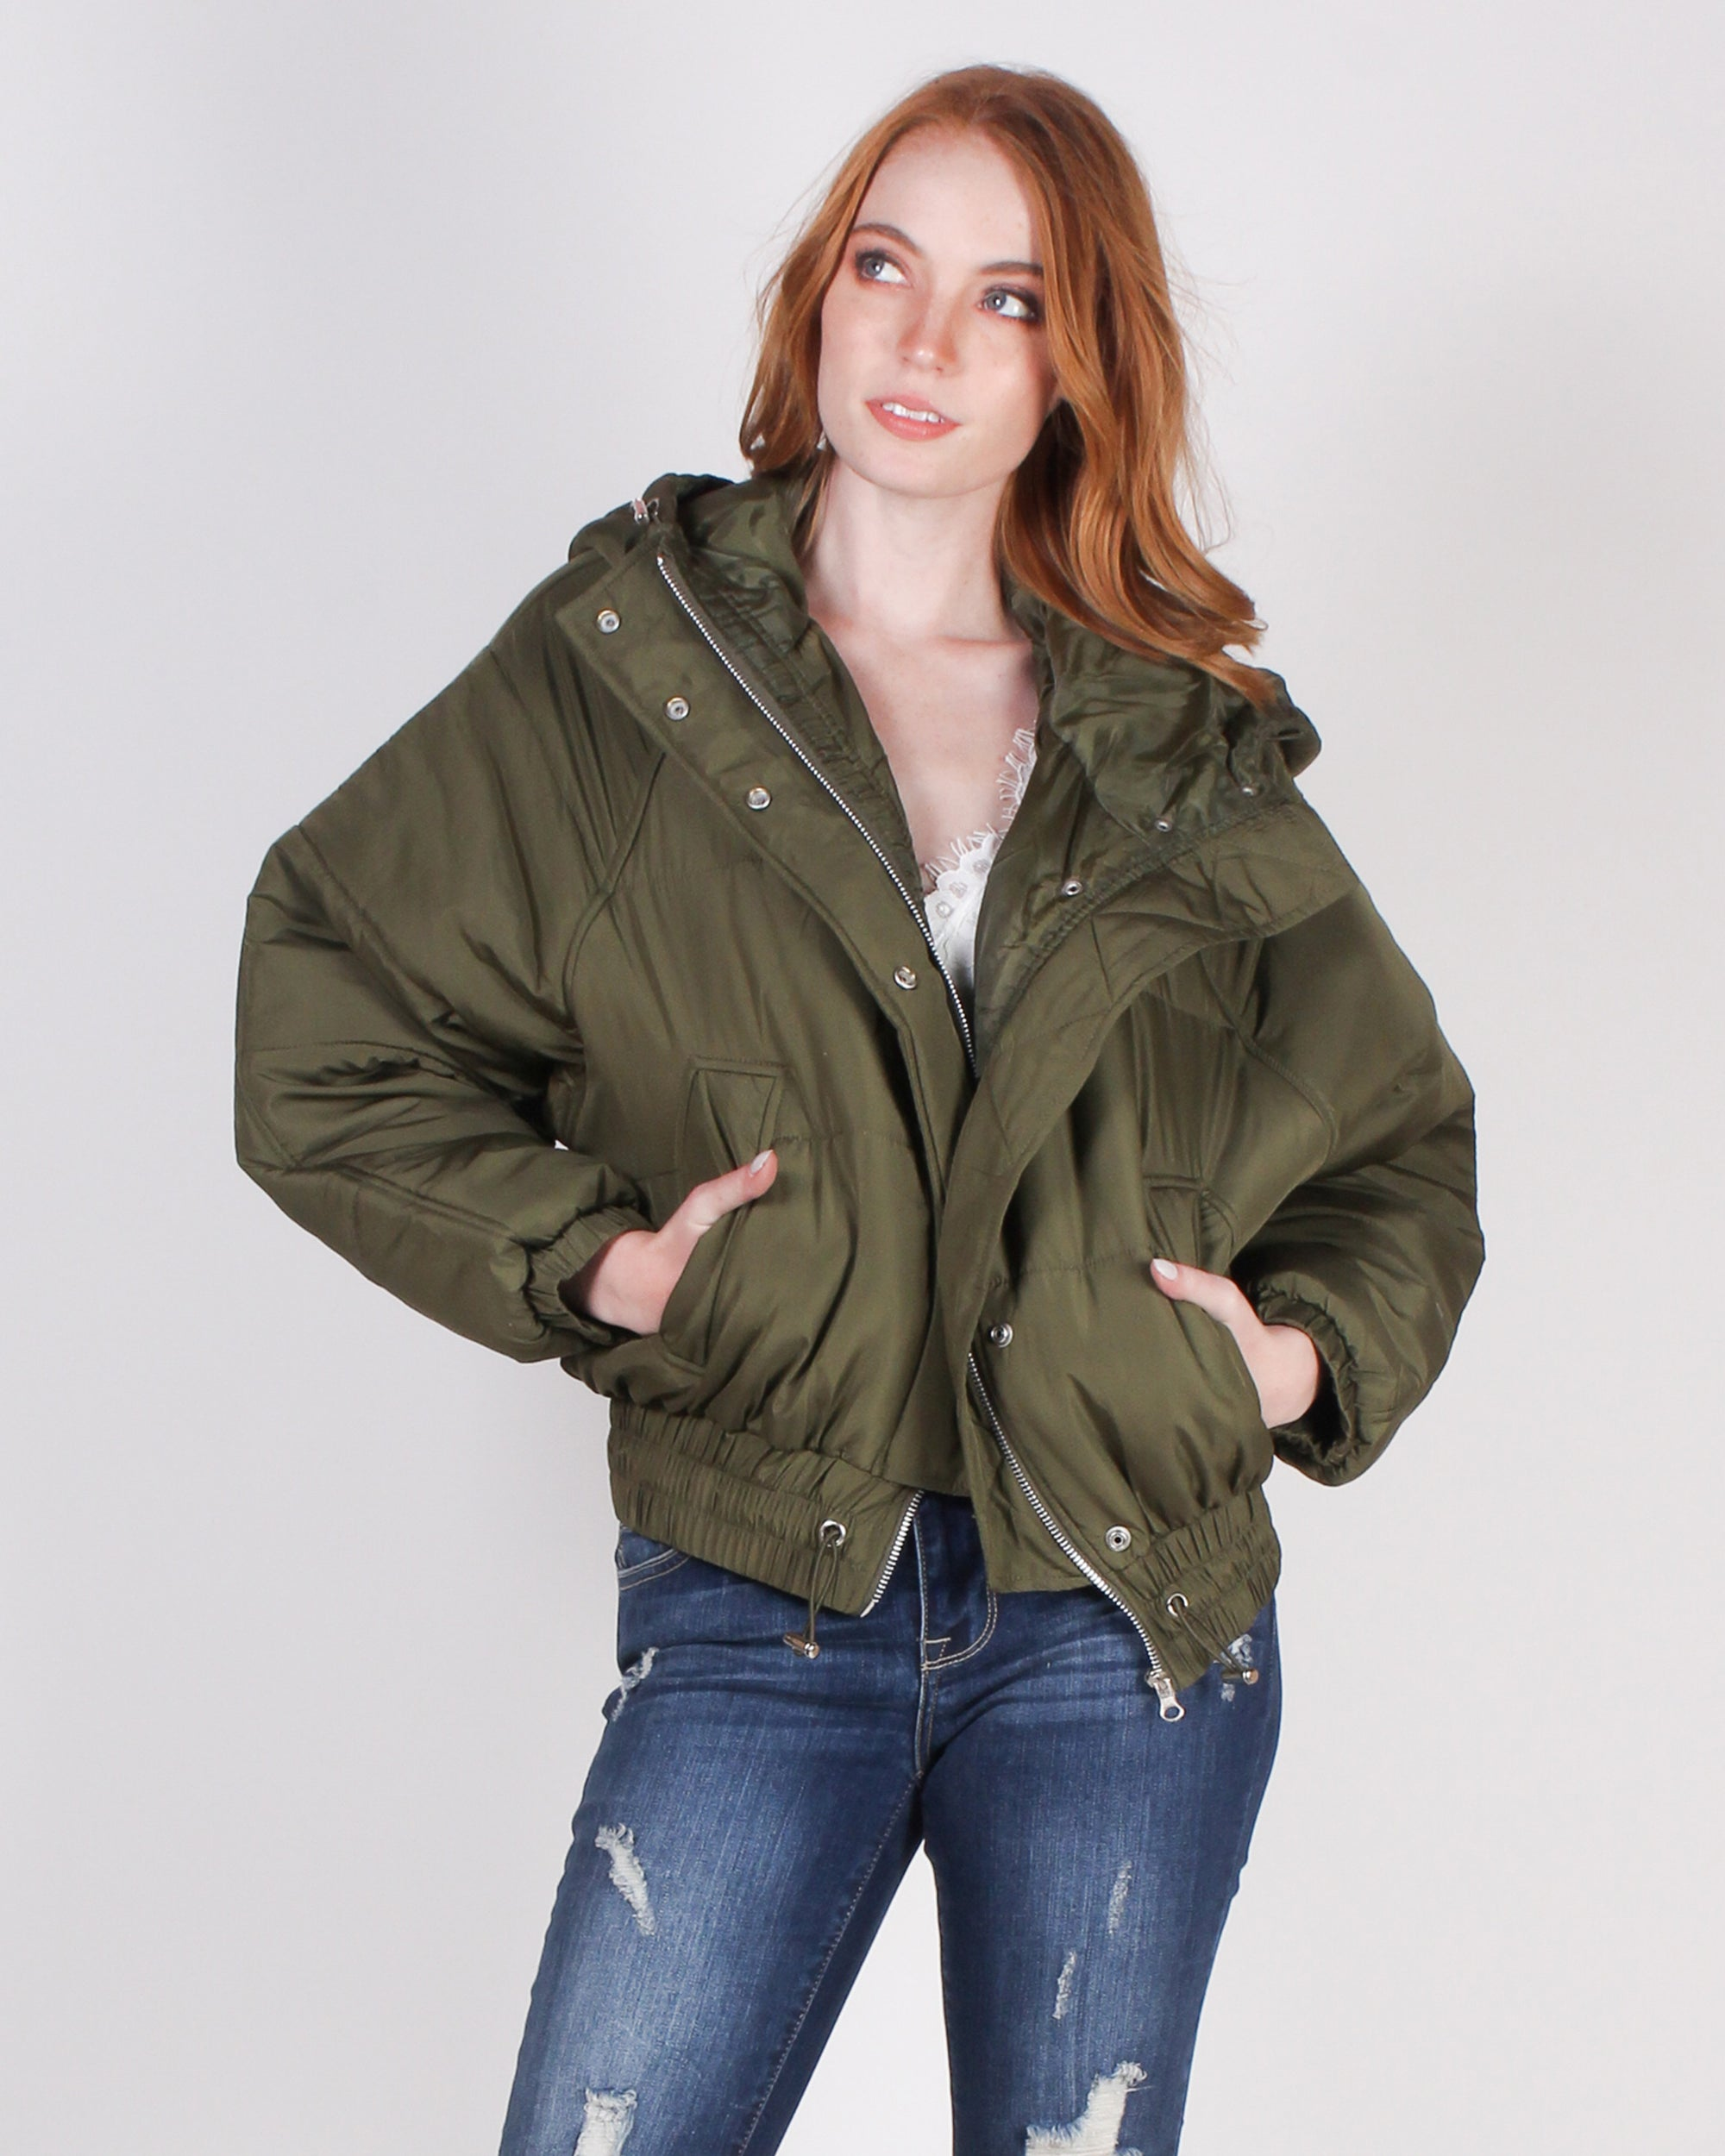 Fashion Q Shop Q Places to Go in Style Bomber Jacket (Olive) FL19H009